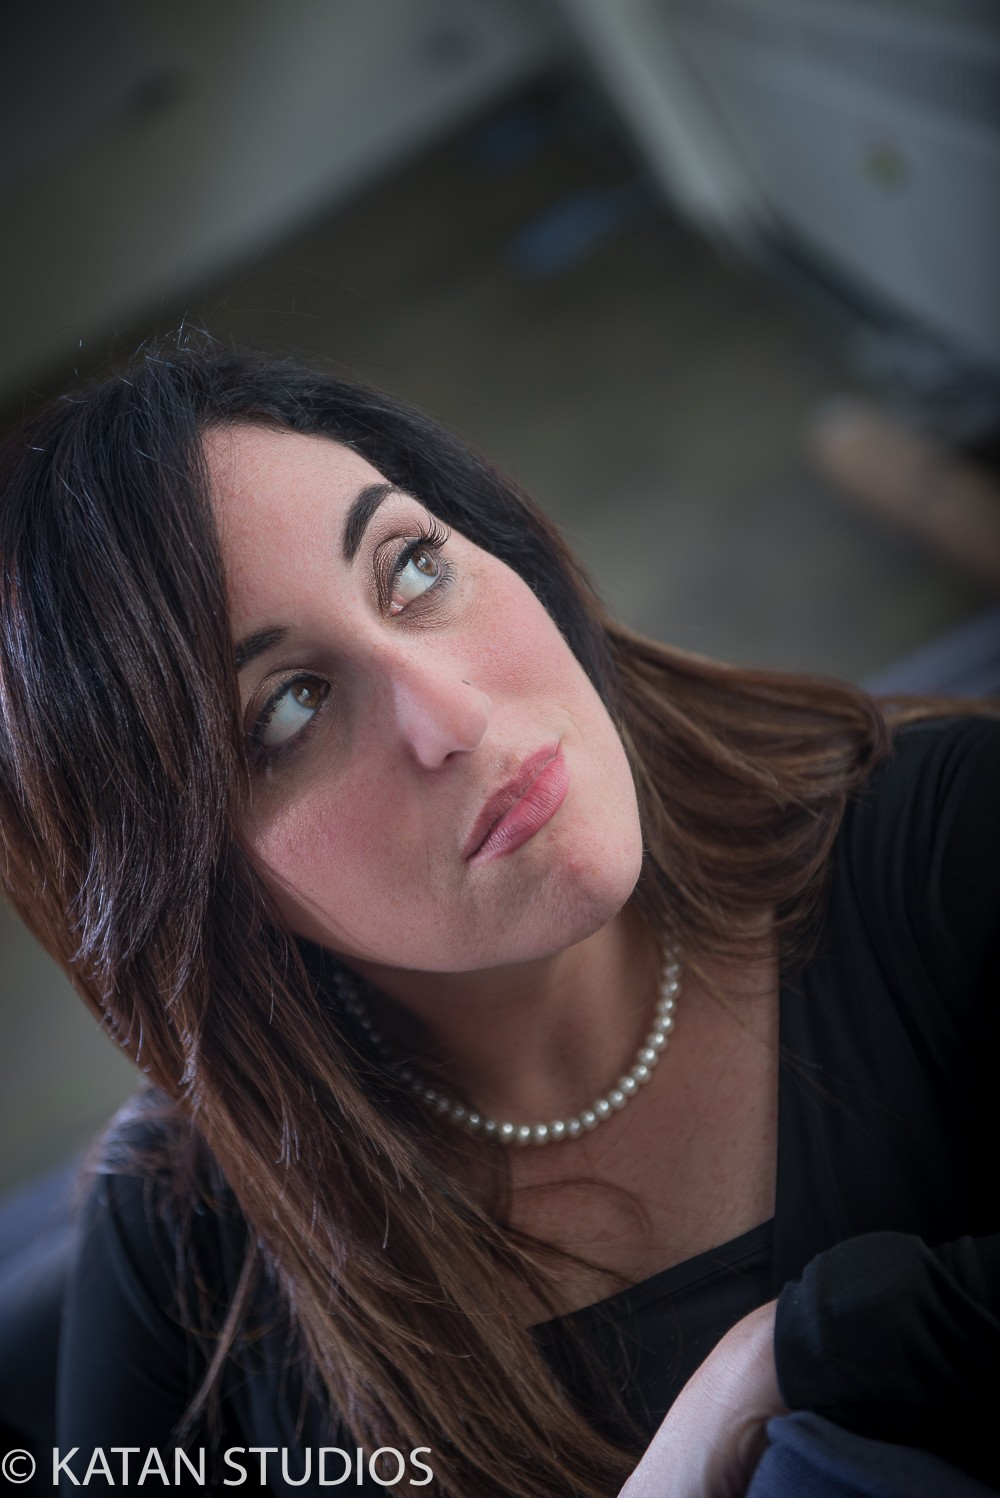 jewish singles in doerun Meet jewish singles in sylvester, georgia online & connect in the chat rooms dhu is a 100% free dating site to find single jewish women & men.